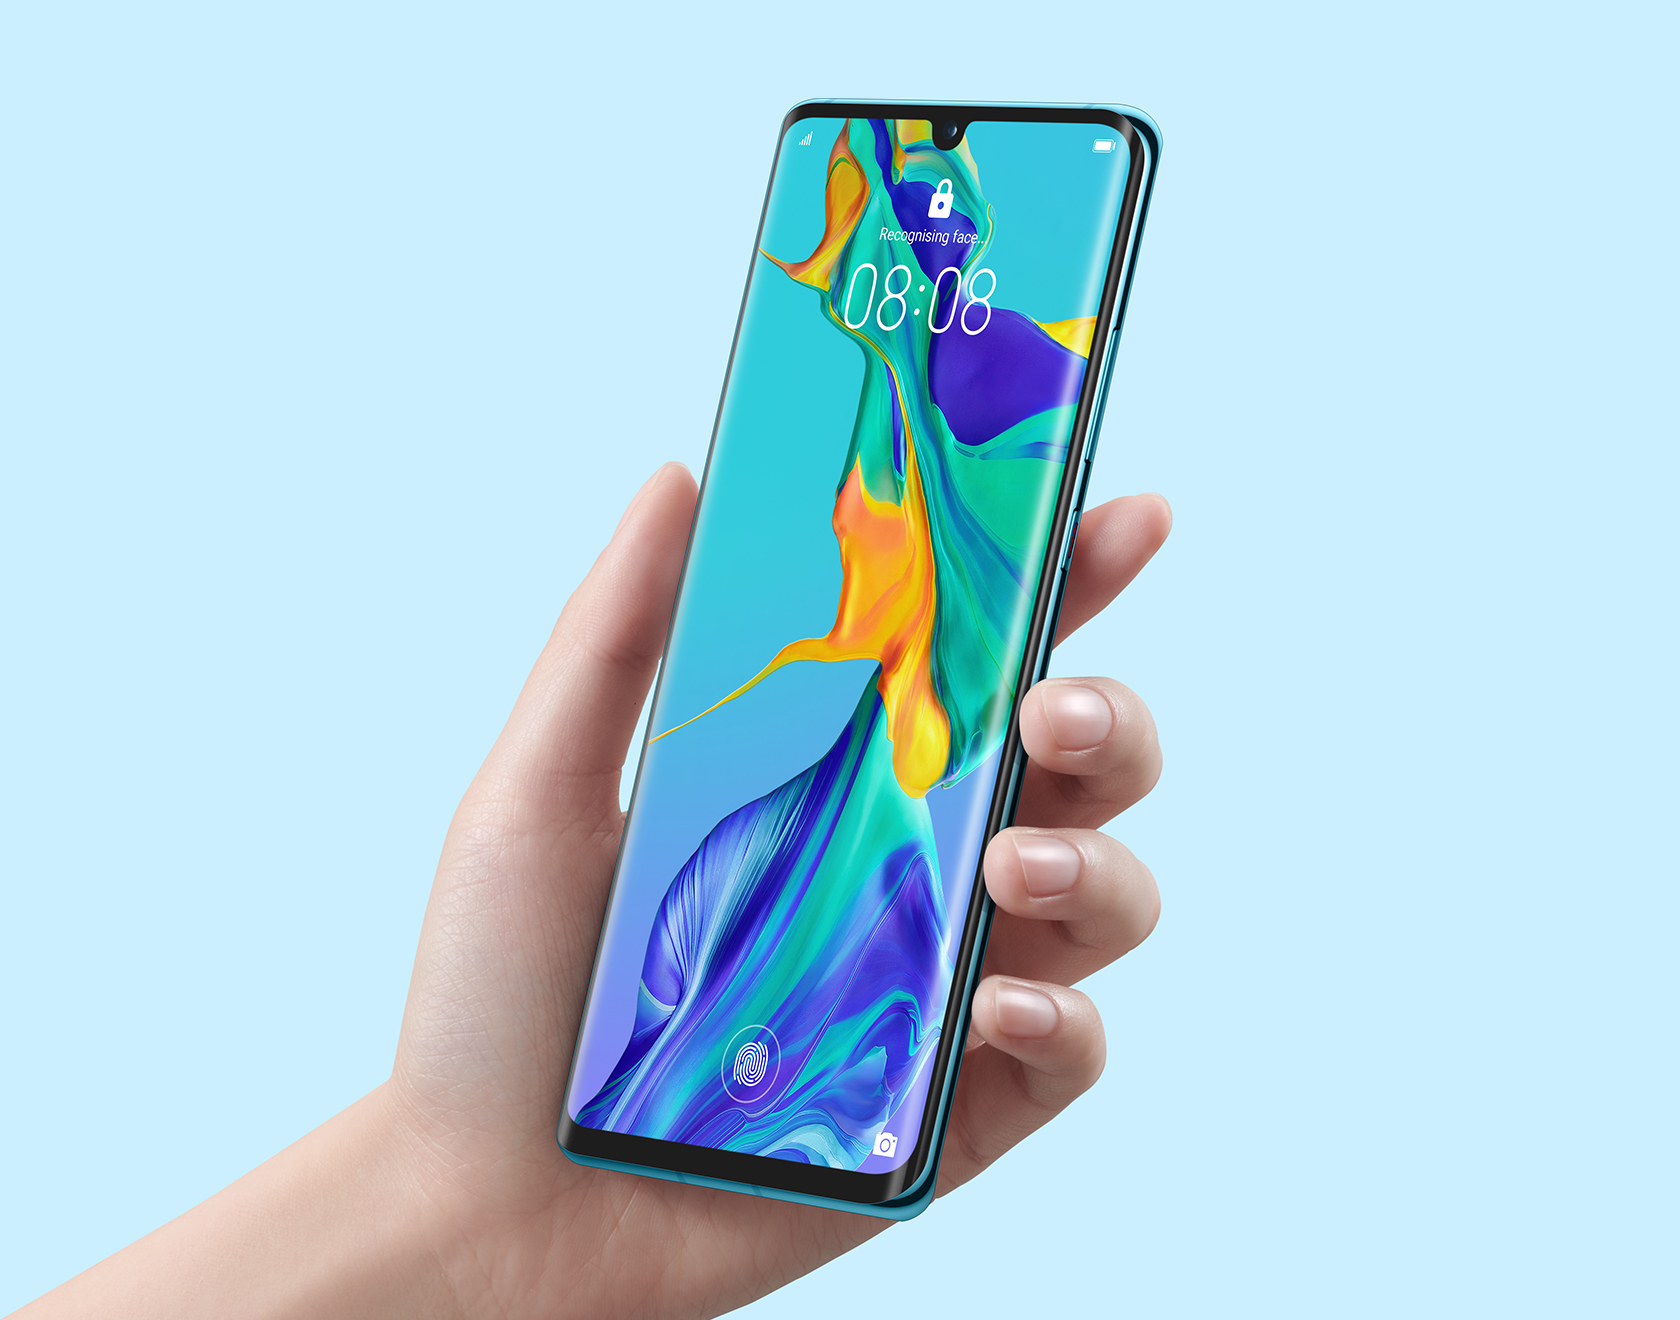 https://consumer-img.huawei.com/content/dam/huawei-cbg-site/common/mkt/pdp/phones/p30-pro/img/camera-intro/pic_compactDesign_bg_md@2x.jpg